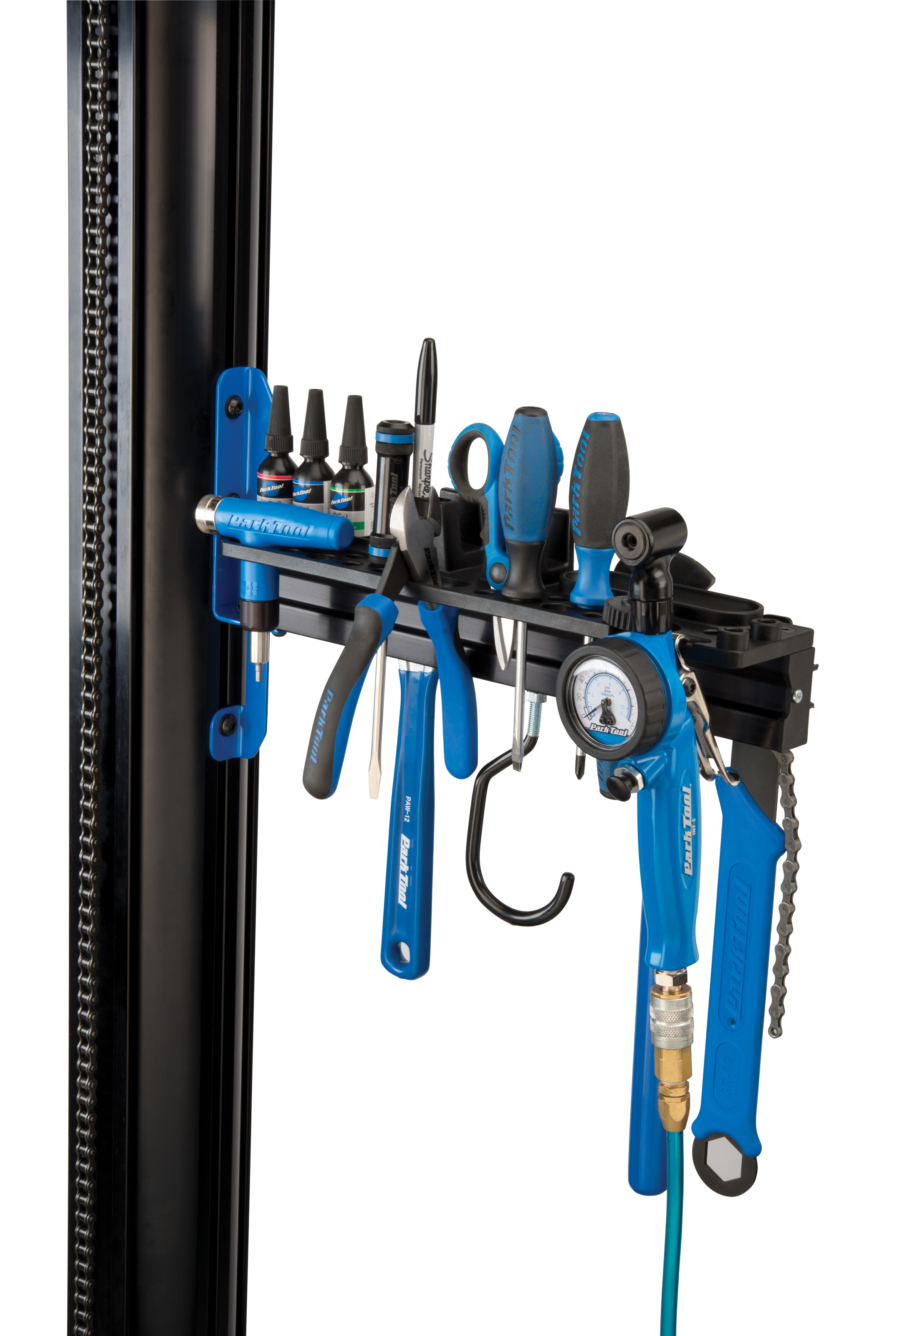 The Park Tool PRS-33TT Deluxe Tool and Work Tray full of tools attached to repair stand, enlarged